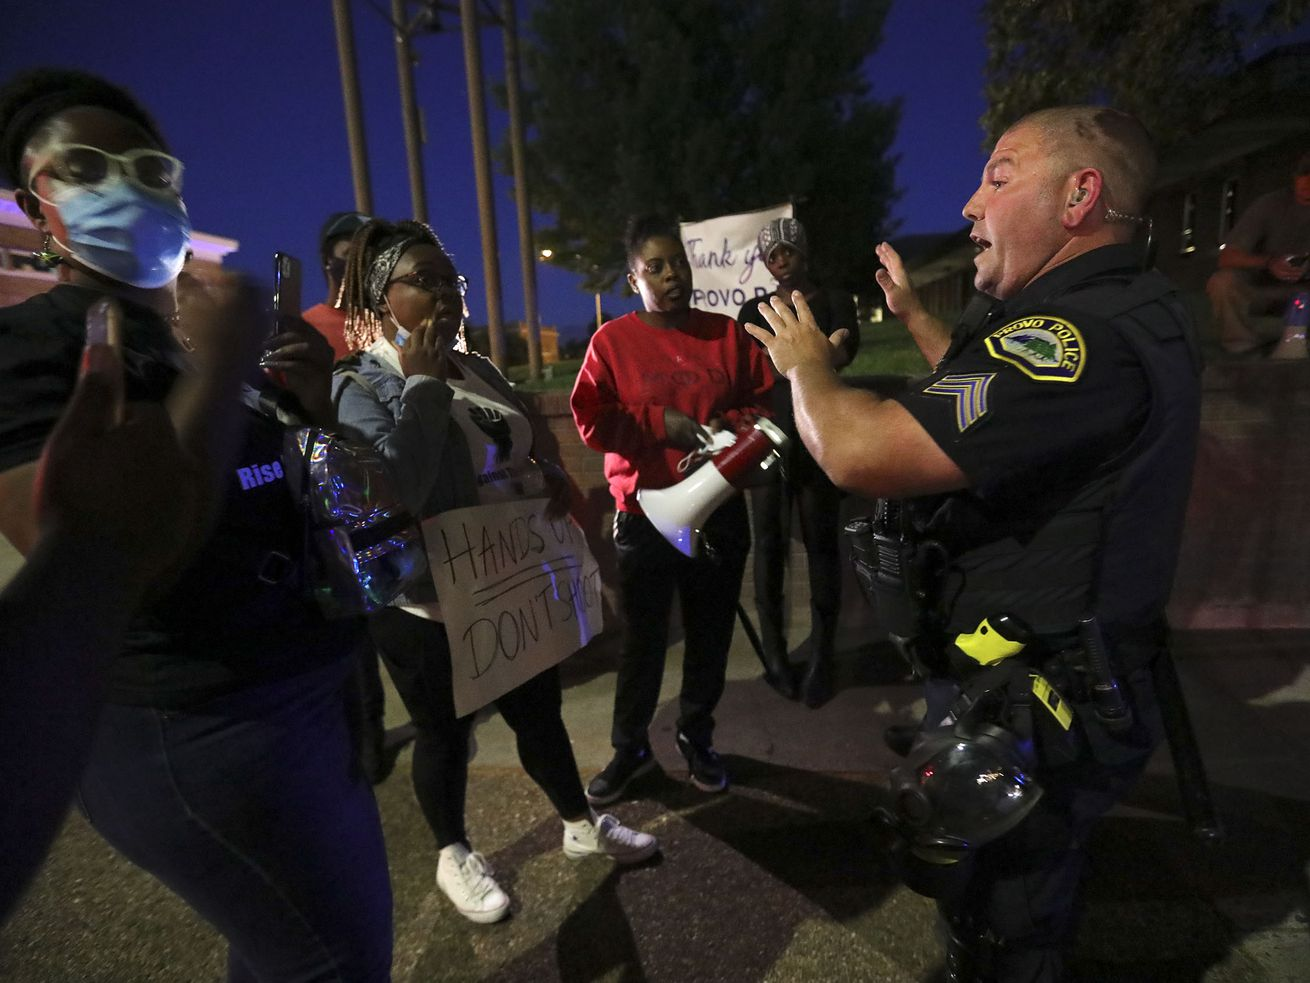 Provo Police Sgt. Palmer talks to protesters during a rally against police brutality and racism outside of the Provo Police Department in Provo on Monday, June 29, 2020.